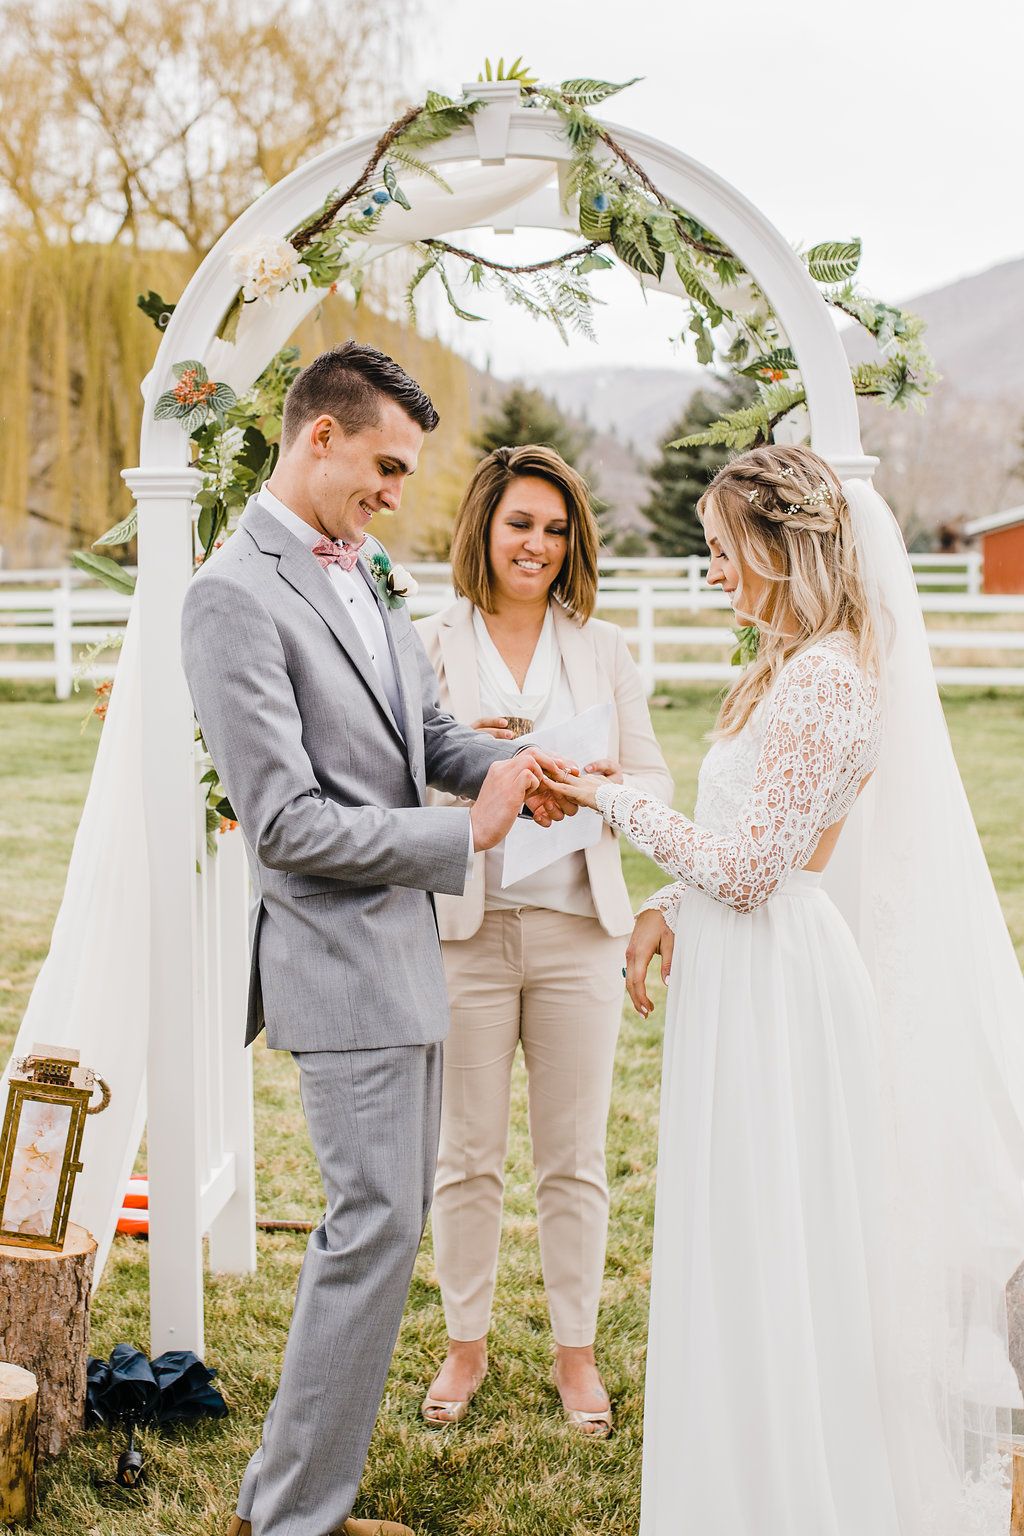 park city outdoor wedding ceremony photography wedding arch ring exchange lace wedding dress